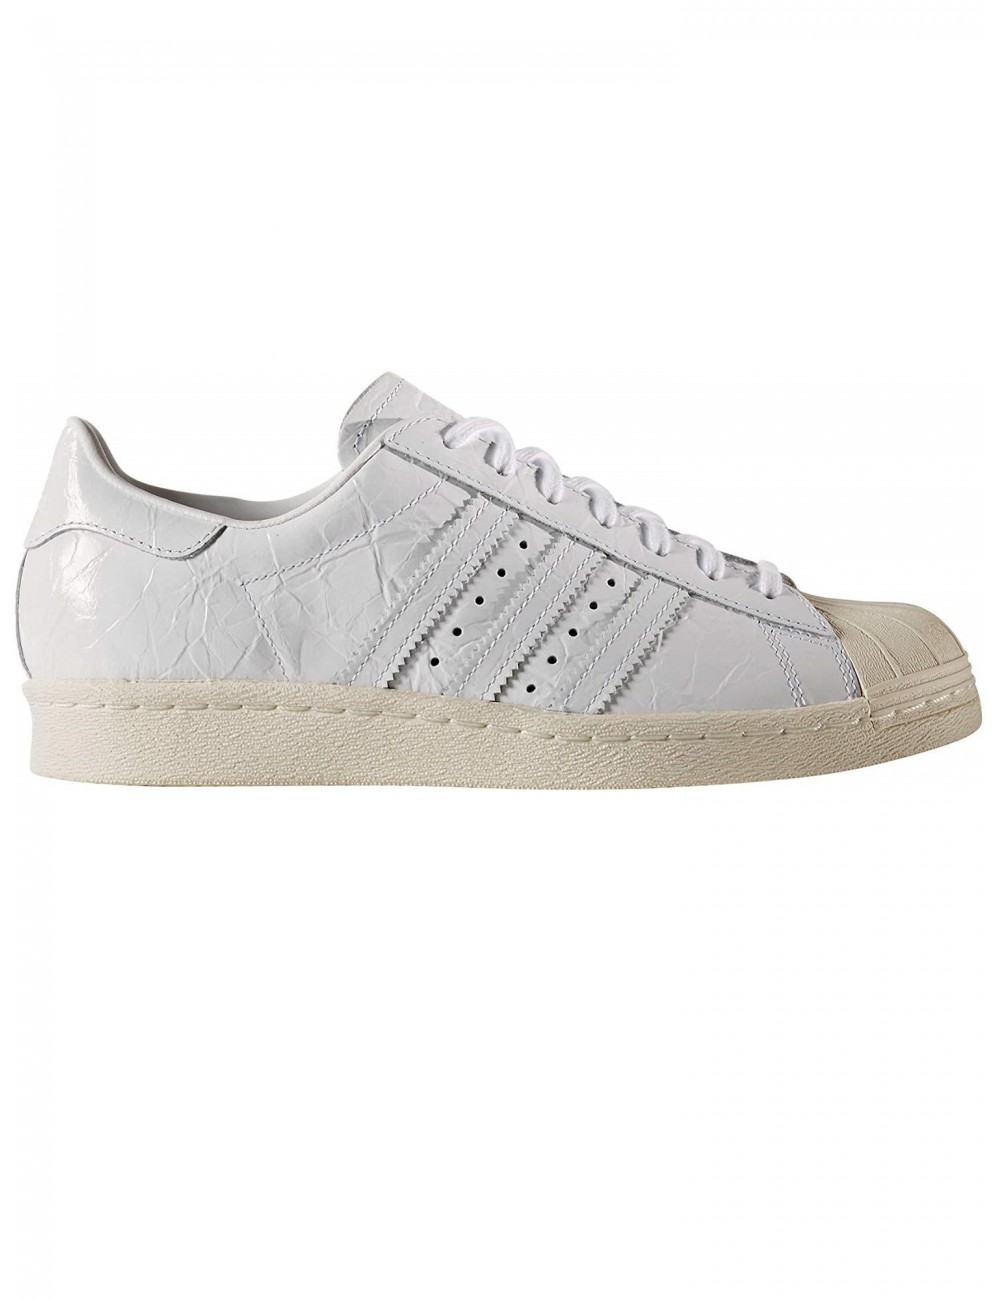 reputable site 49647 ef6e8 Scarpe Adidas Superstar 80s Donna Bianche in Pelle vintage